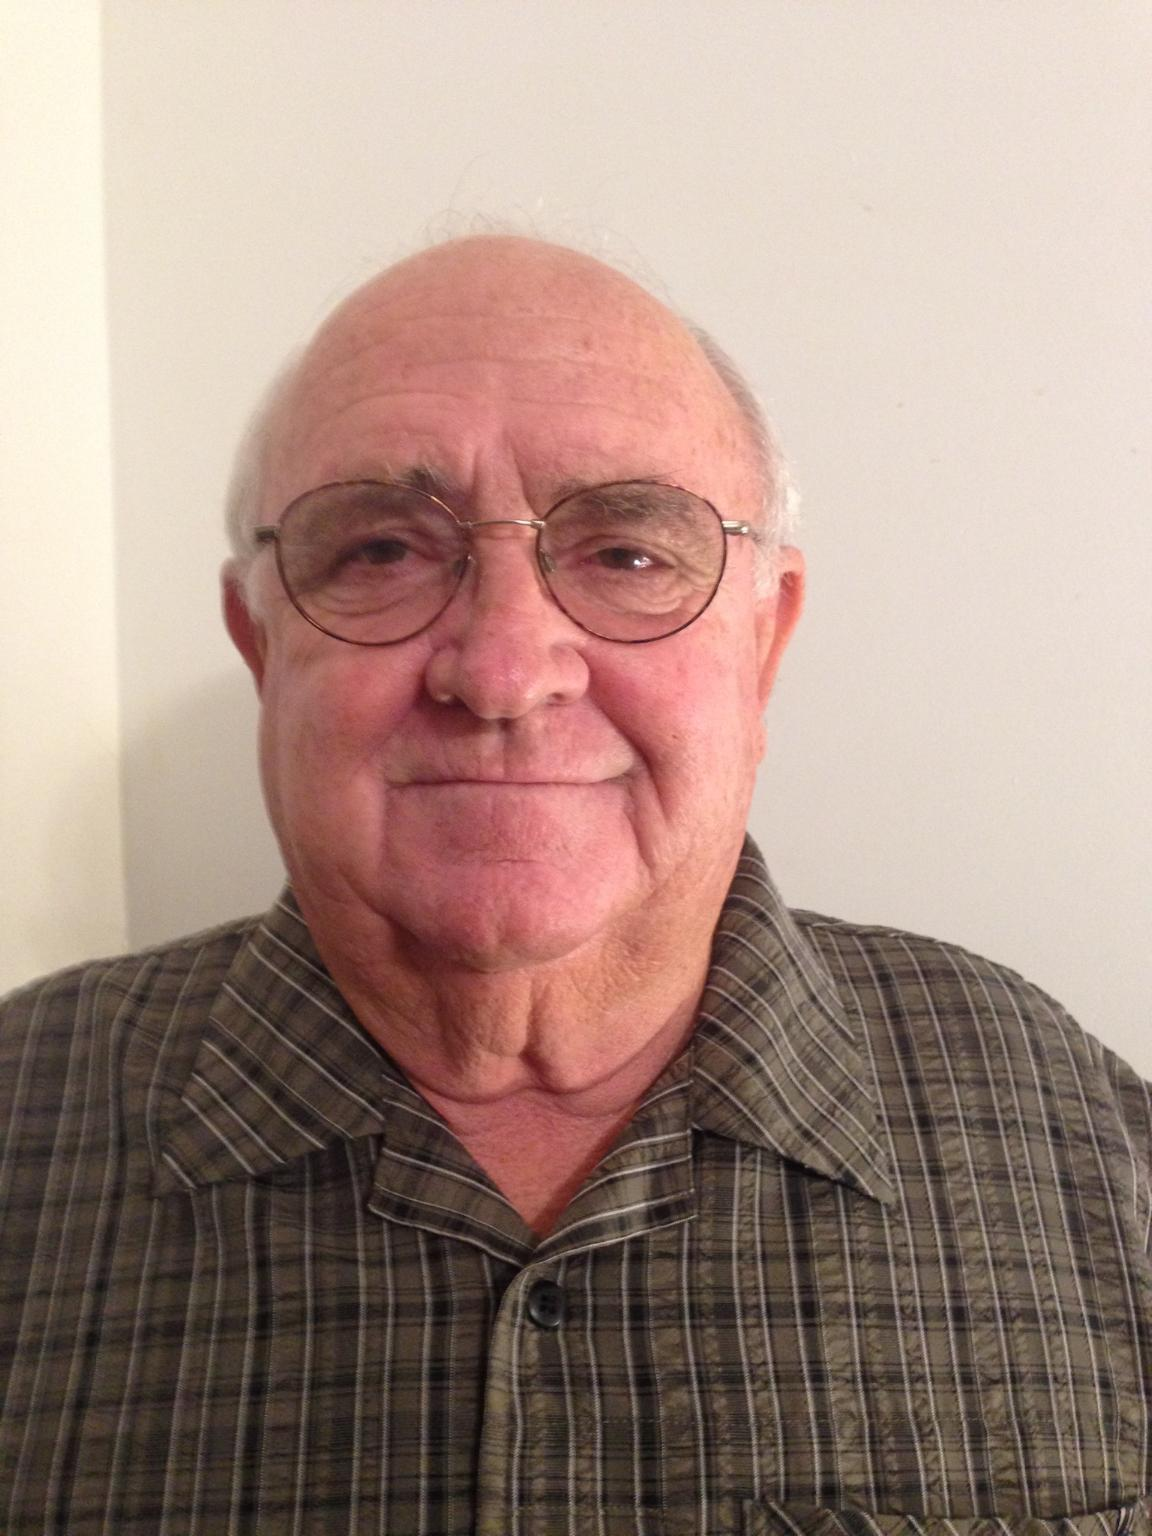 Richard Hirschi | Submitted photo, St. George News